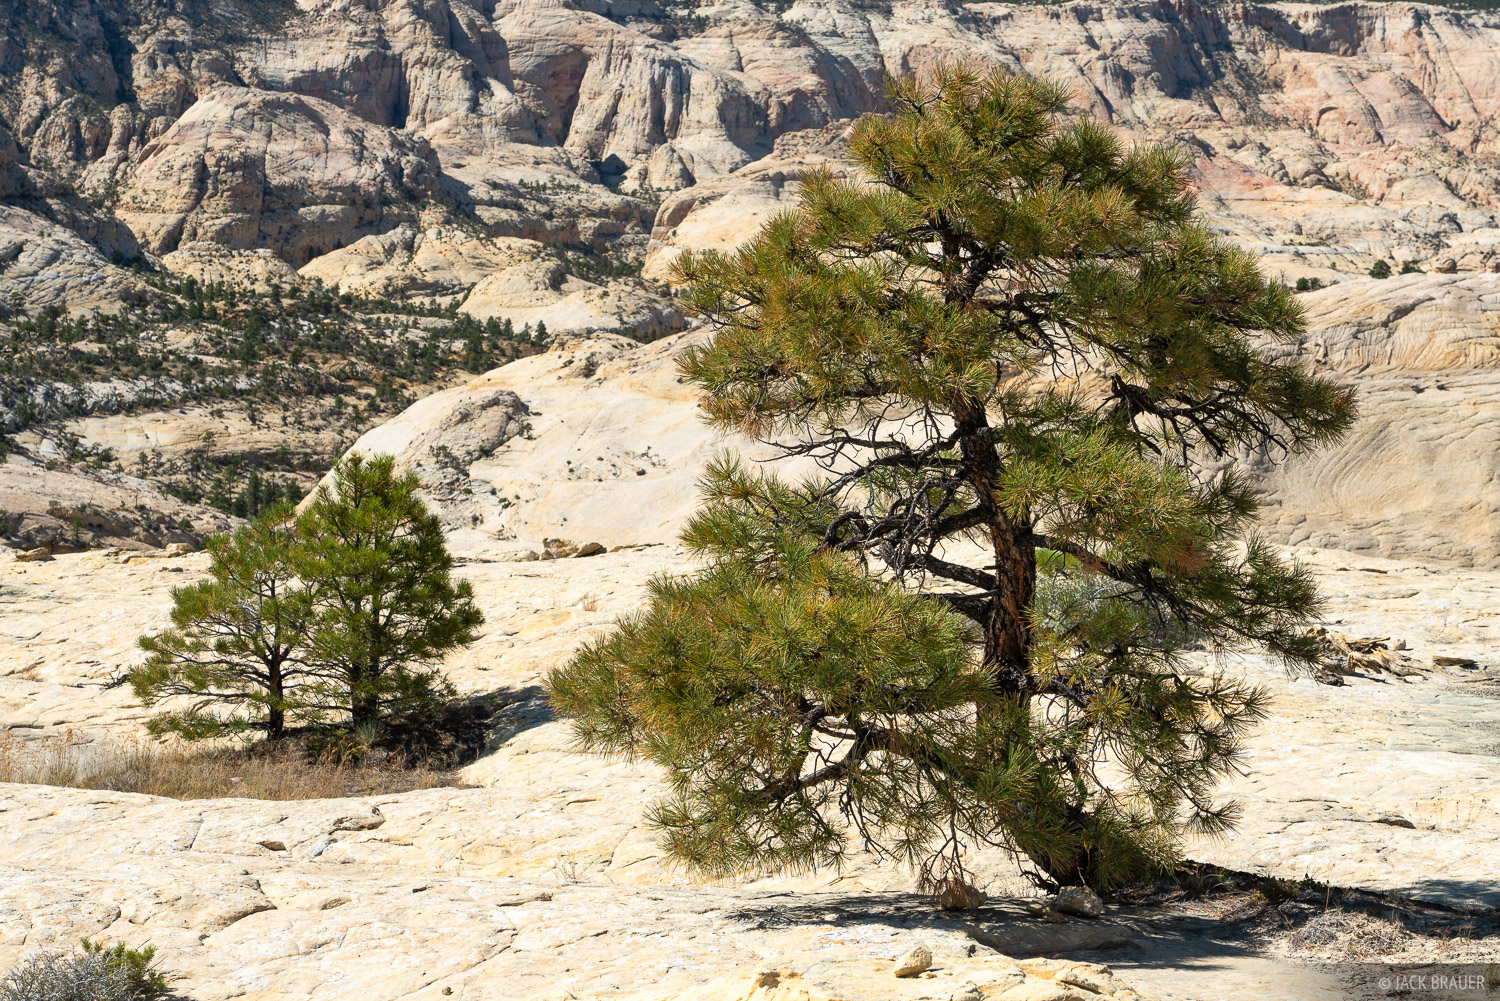 The higher-elevation region of Grand Staircase-Escalante National Monument between the towns of Escalante and Boulder, with its...